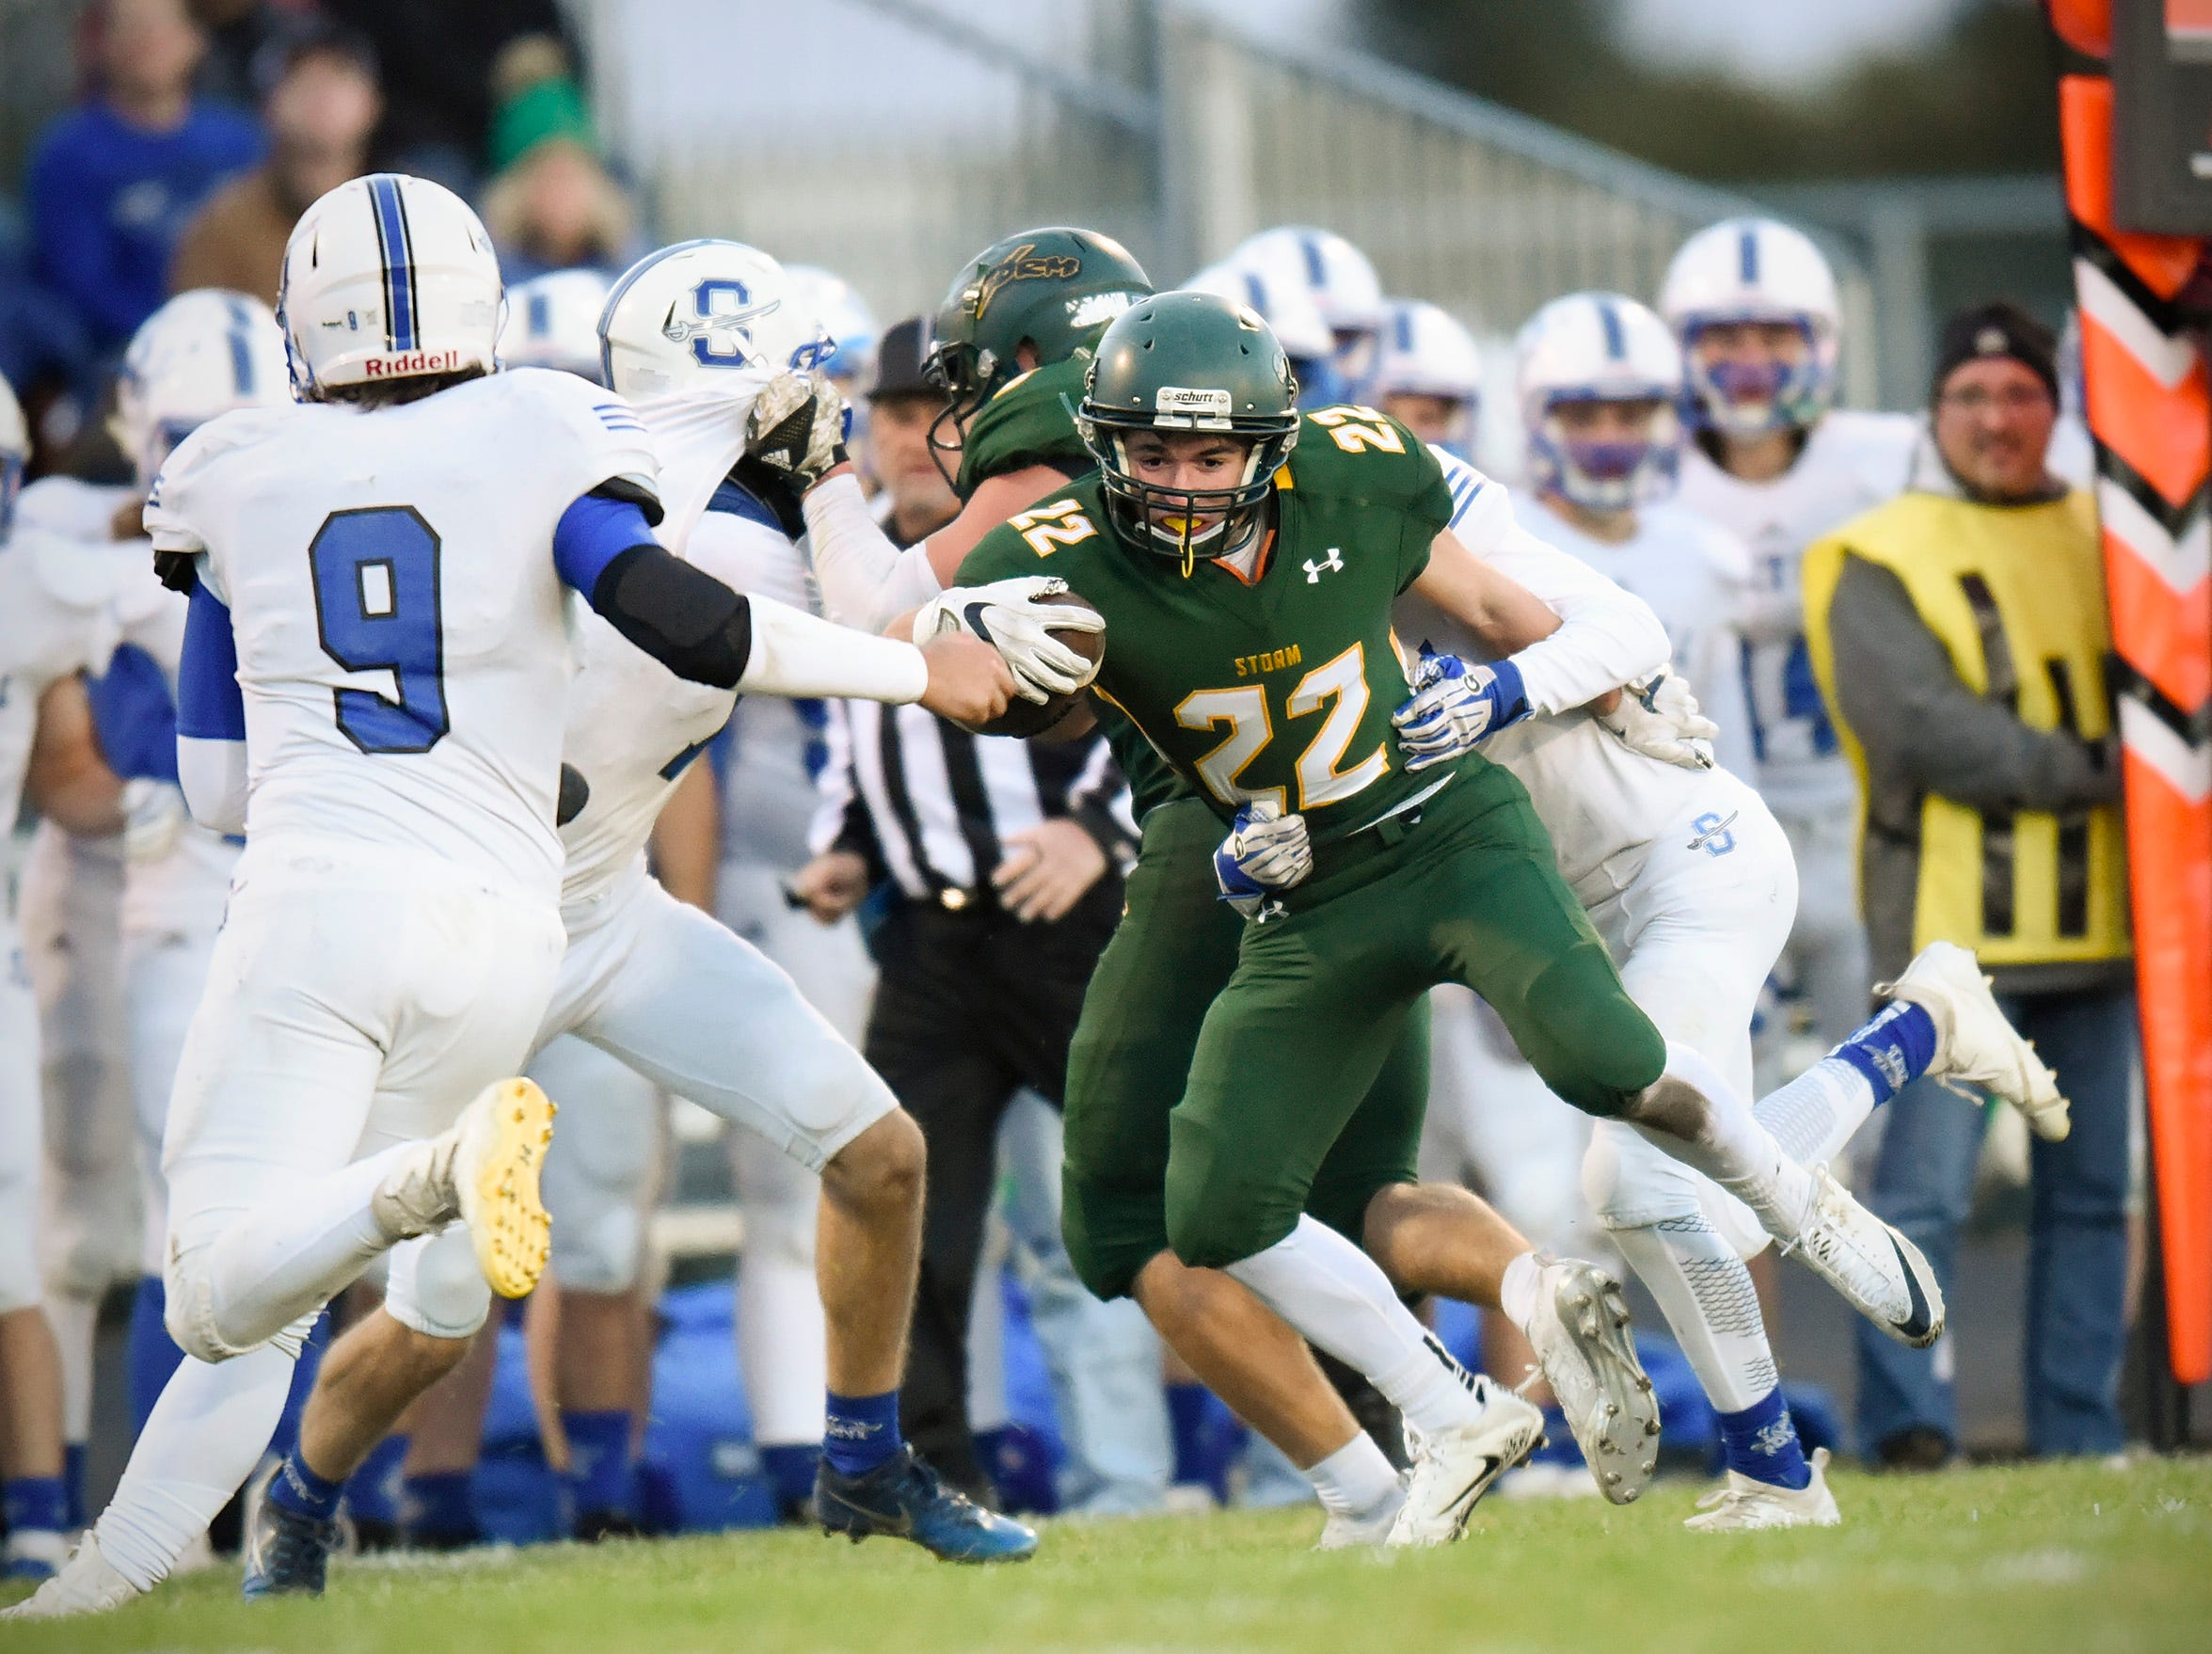 Sauk Rapids' Christian Rodriguez gains yards along the sideline before being brought down against Sartell during the first half Friday, Sept. 28, in Sauk Rapids.